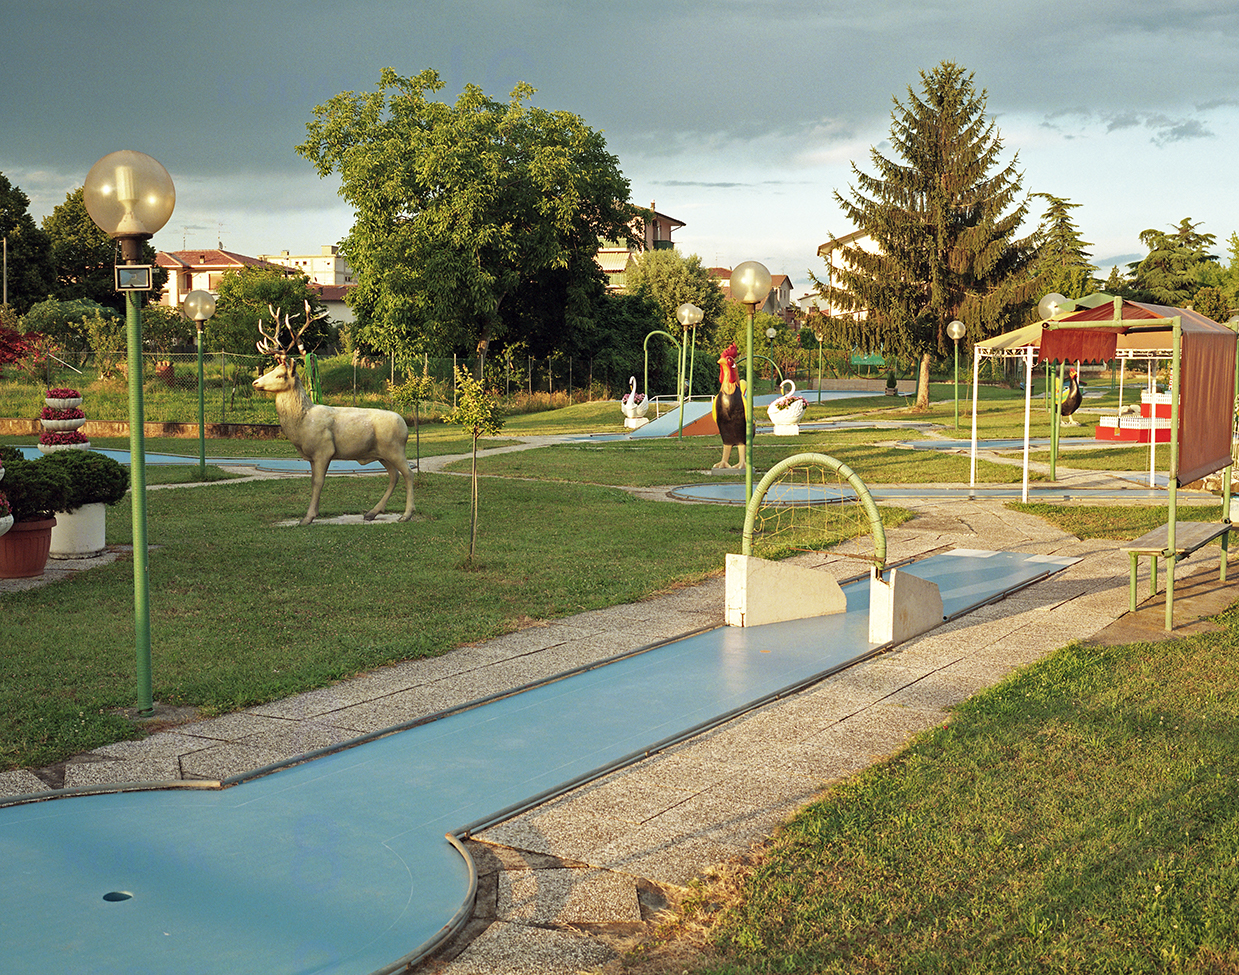 Olmo, 2018, ItalyMinigolf field at sunset in the small town of Olmo, nearby Vicenza